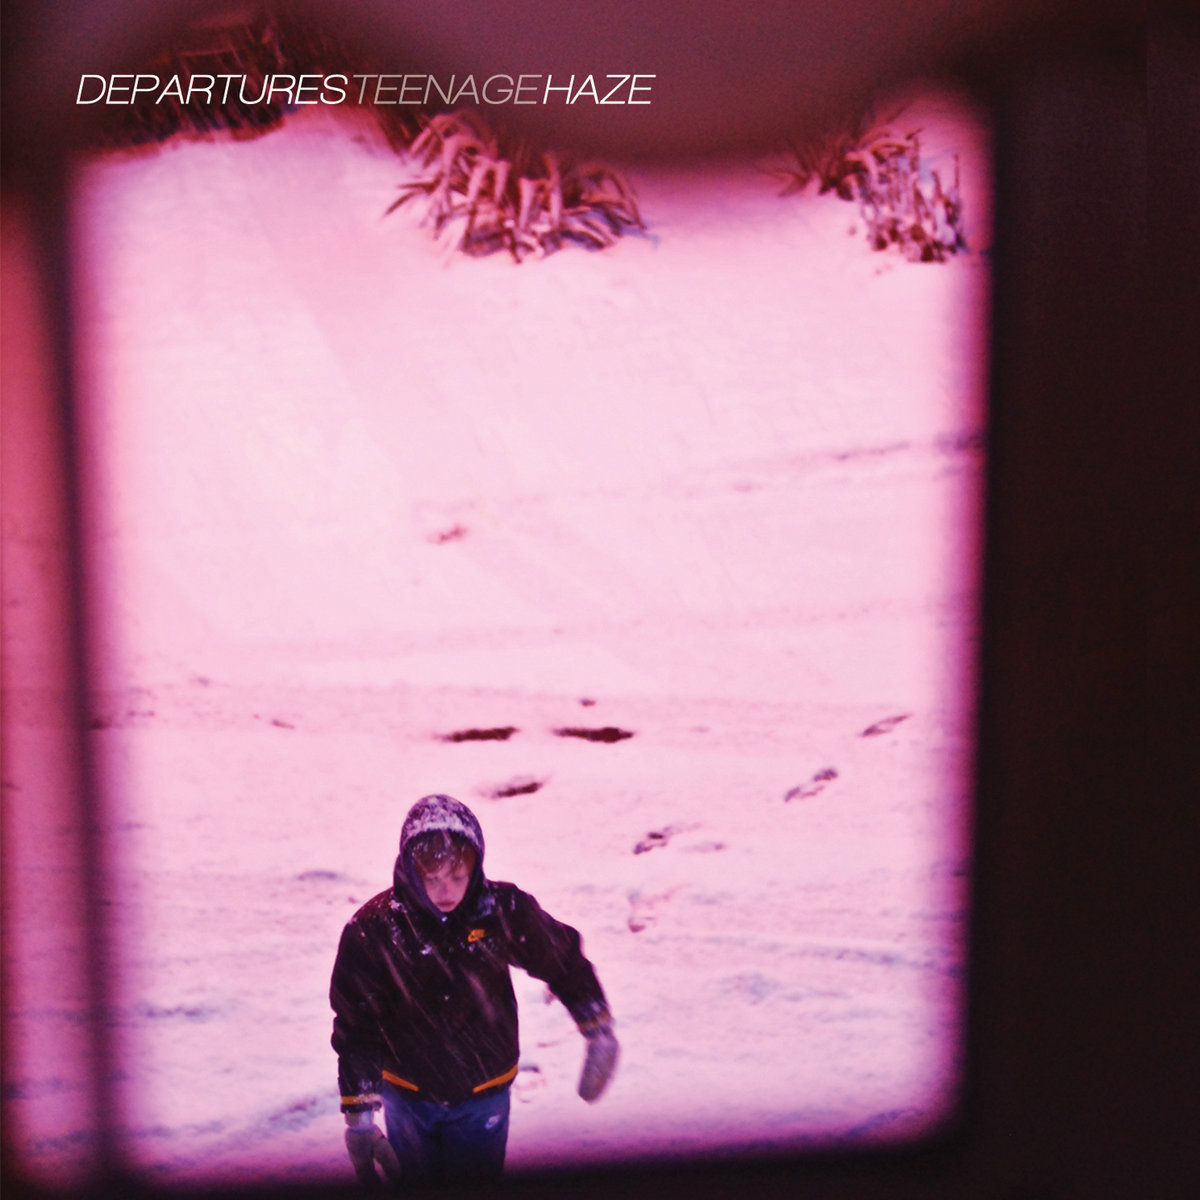 Departures - Teenage Haze (reissue)